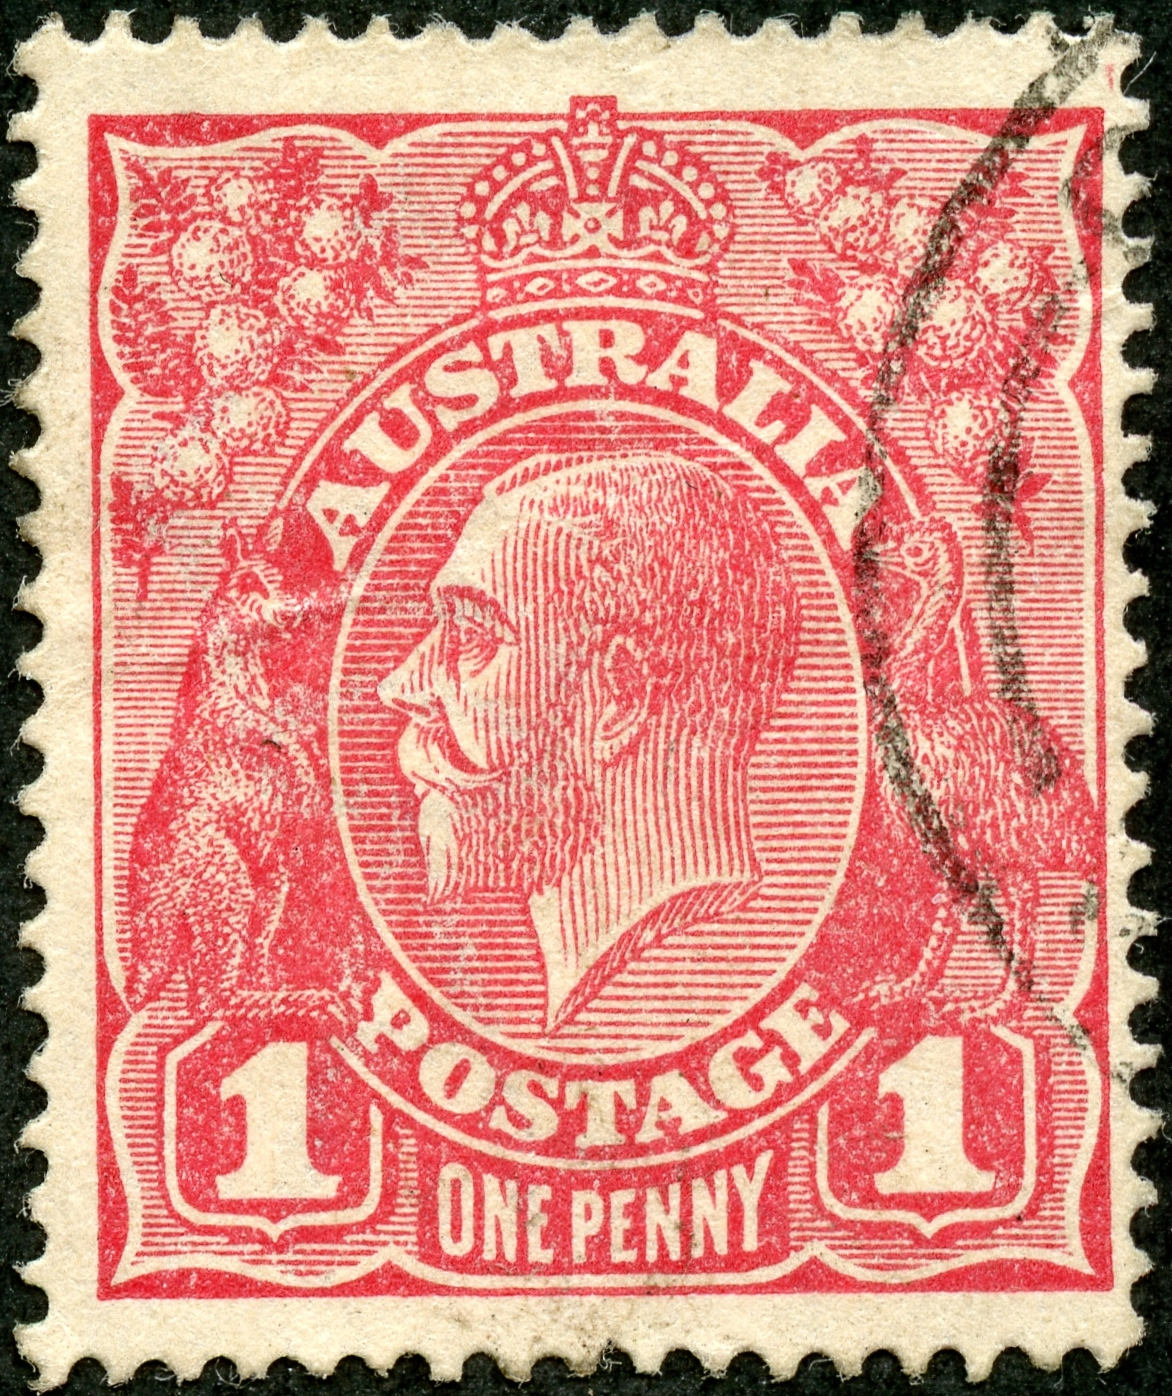 Big Blue 1840-1940: Australia Georges - the KGV stamps